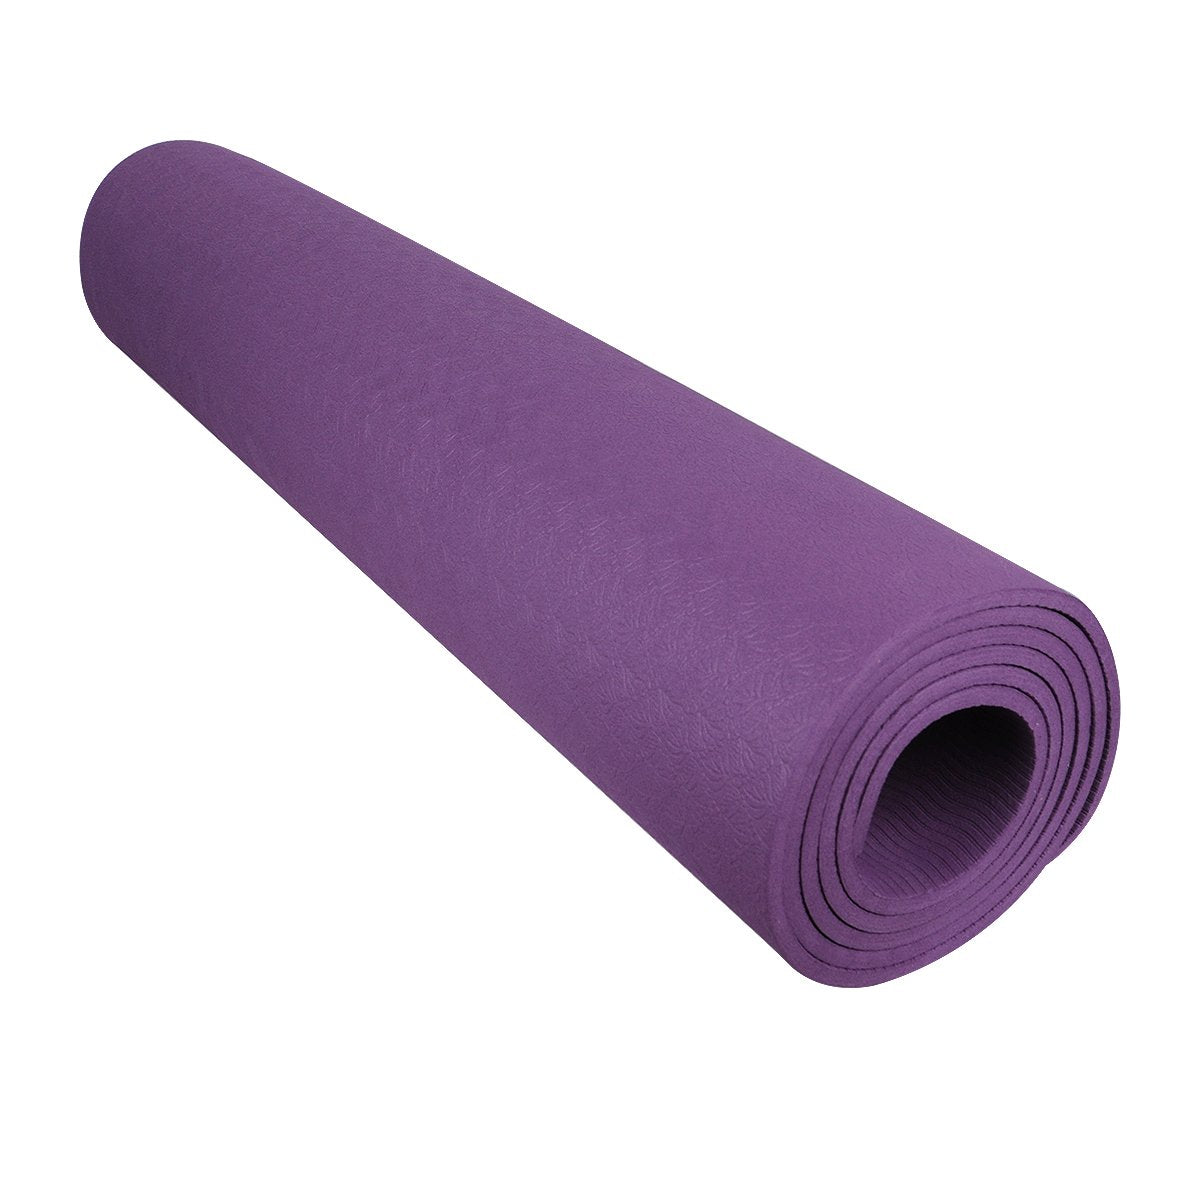 Kxana TPE Yoga mat in Single Layer 8mm